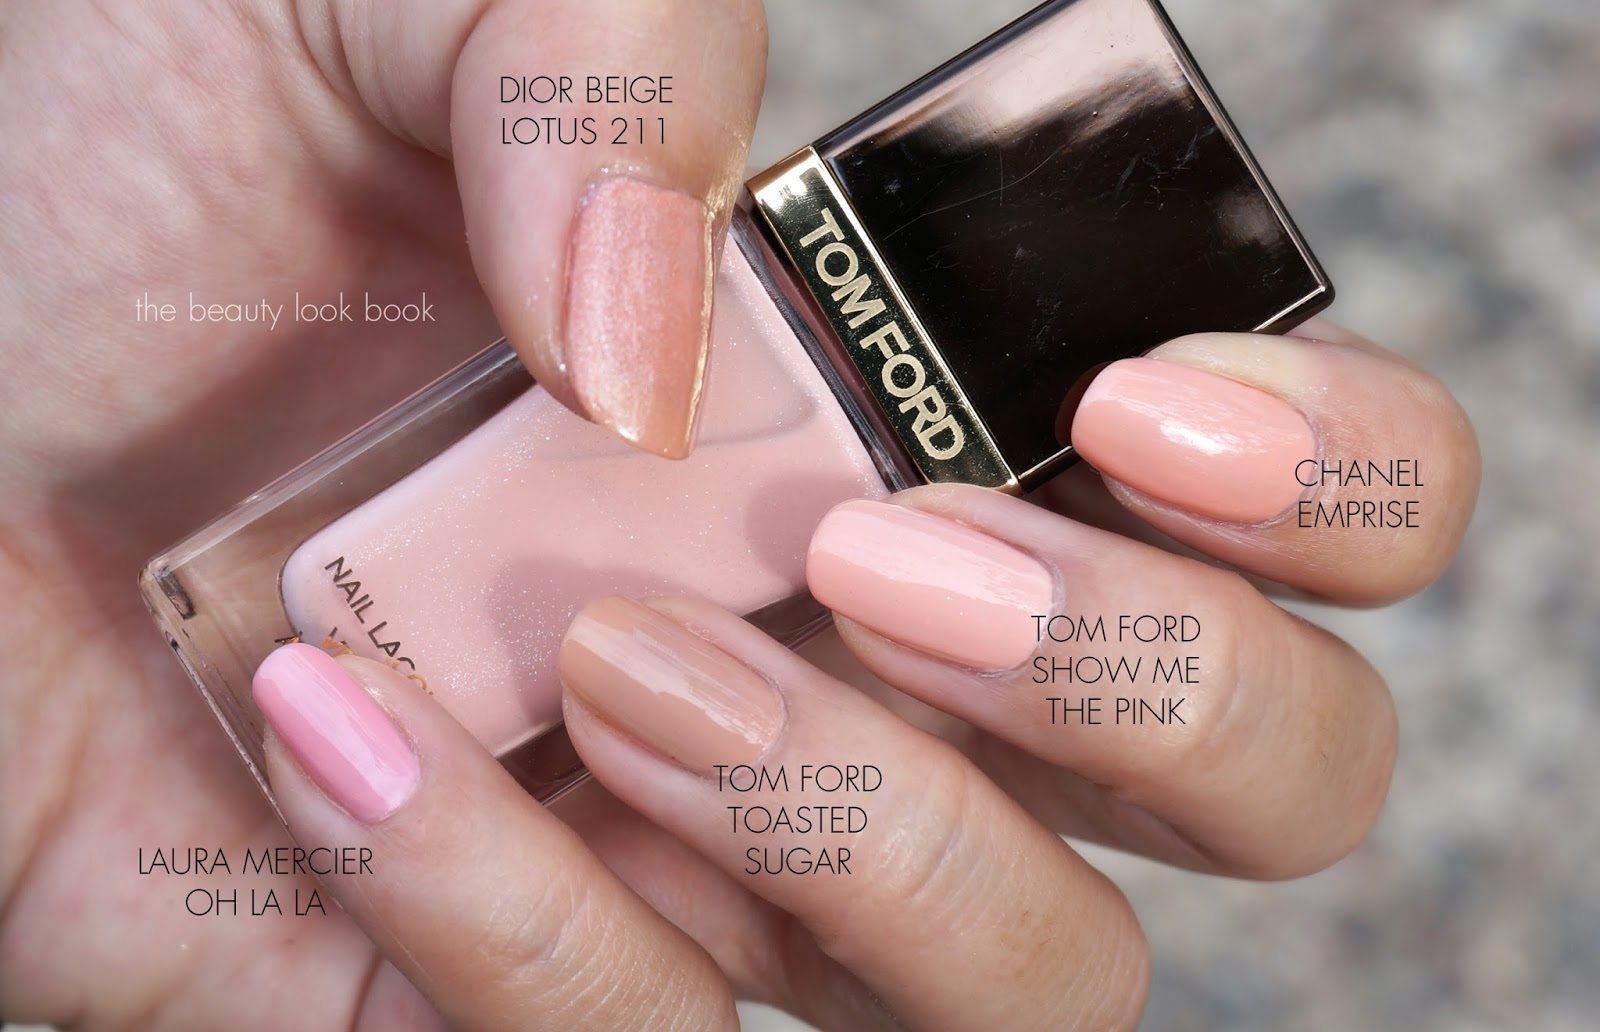 Tom Ford Show Me the Pink Nail Lacquer - Fall 2013 | The Beauty Look ...